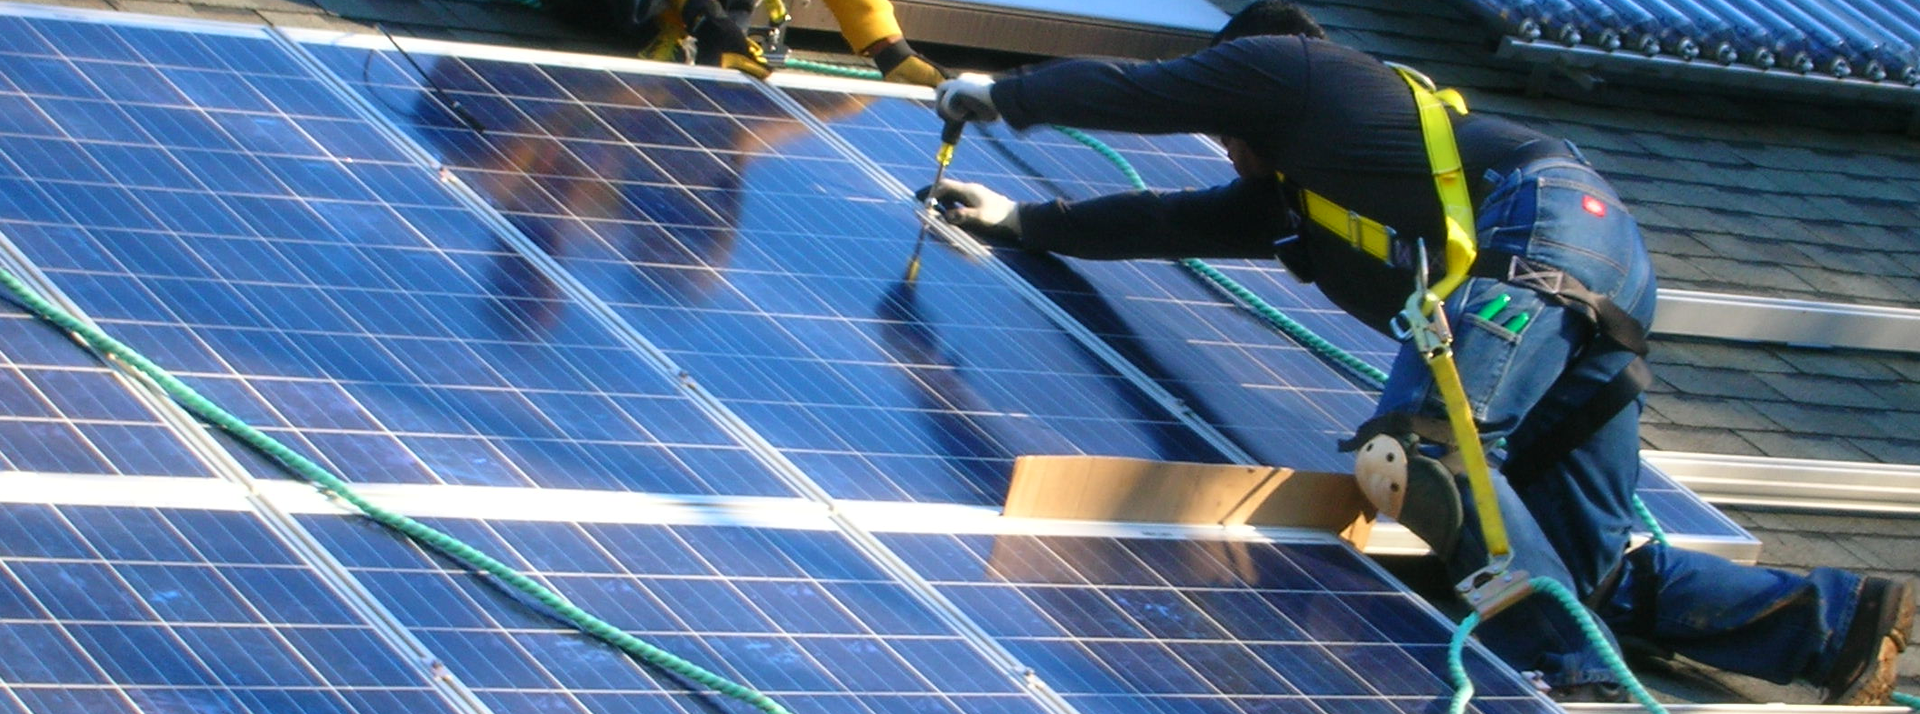 Affordable Solar Training Programs - Online and Workshops